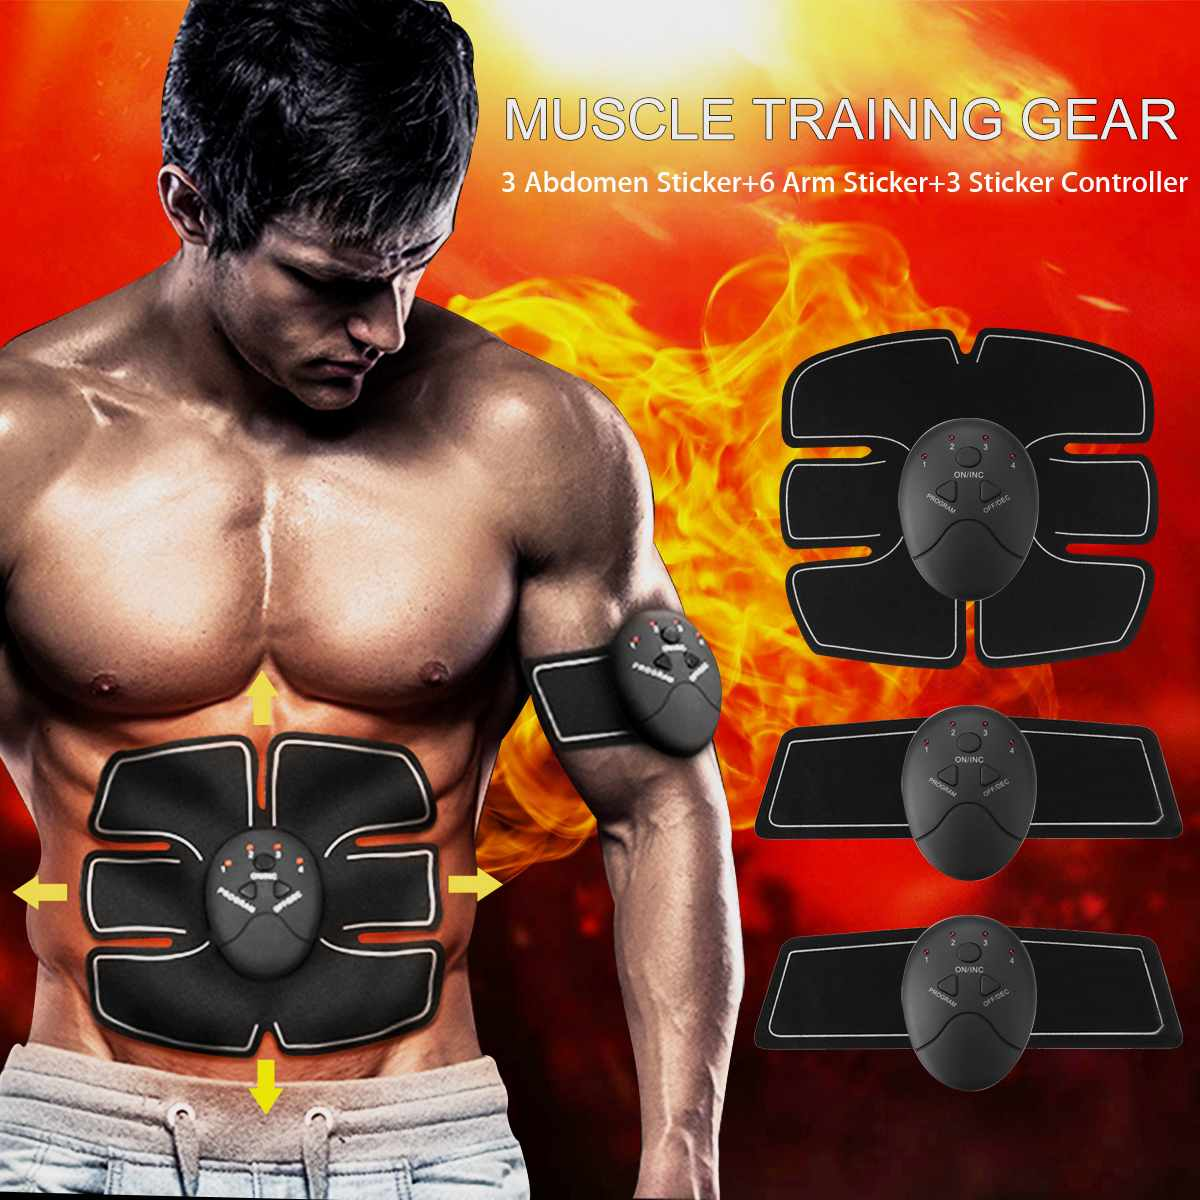 Muscle Training Gear 12pcs - 4aces Gadets